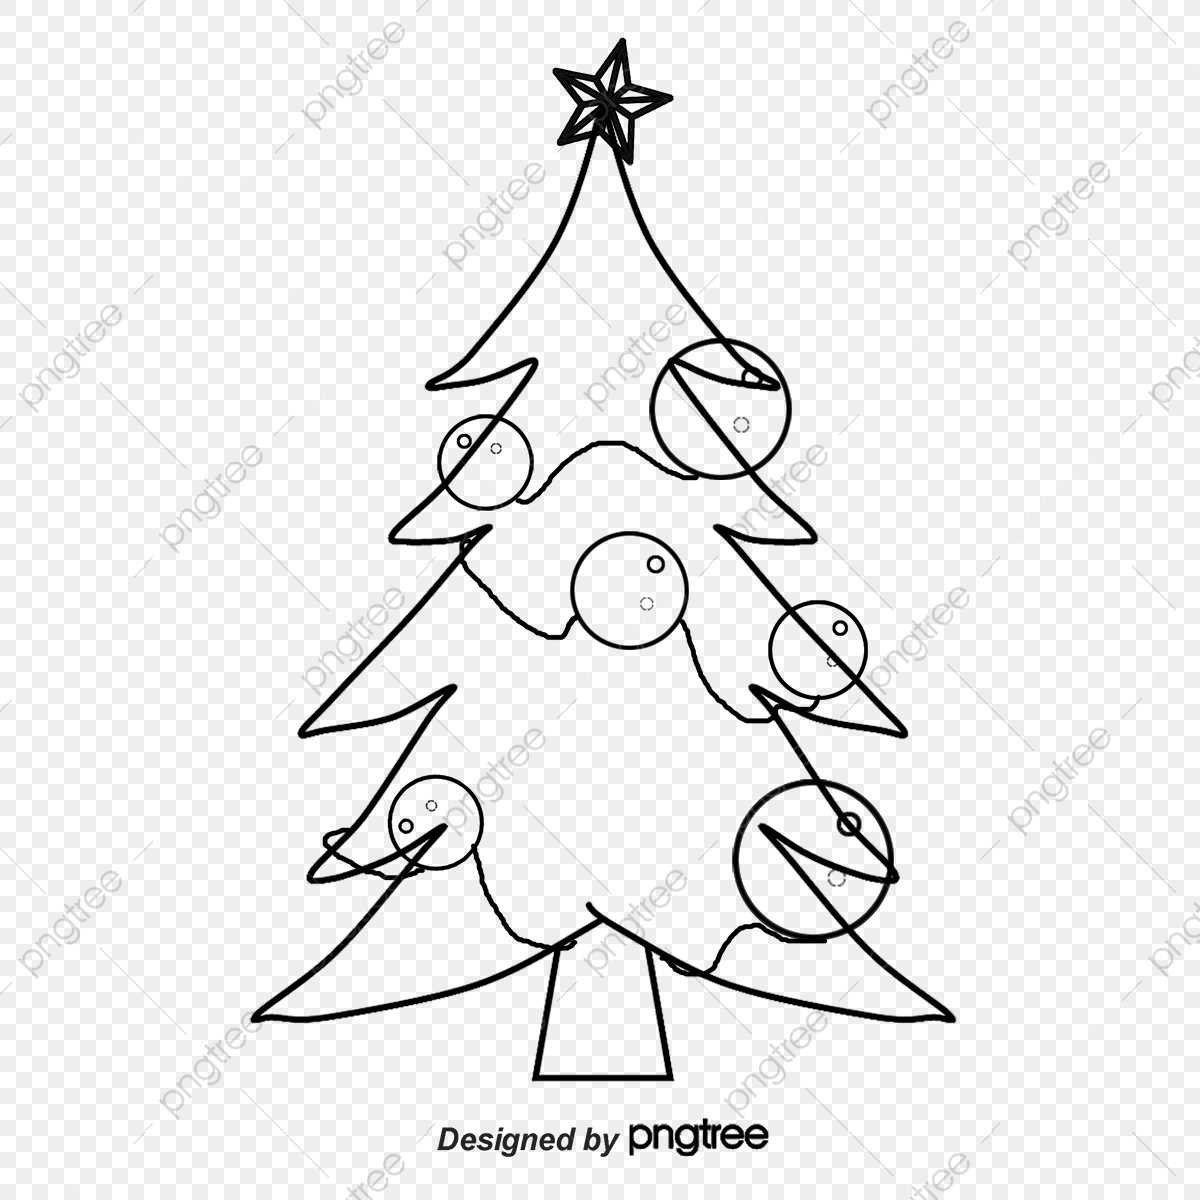 cartoon christmas tree png images vector and psd files free download on pngtree https pngtree com freepng cartoon christmas tree decoration 987475 html